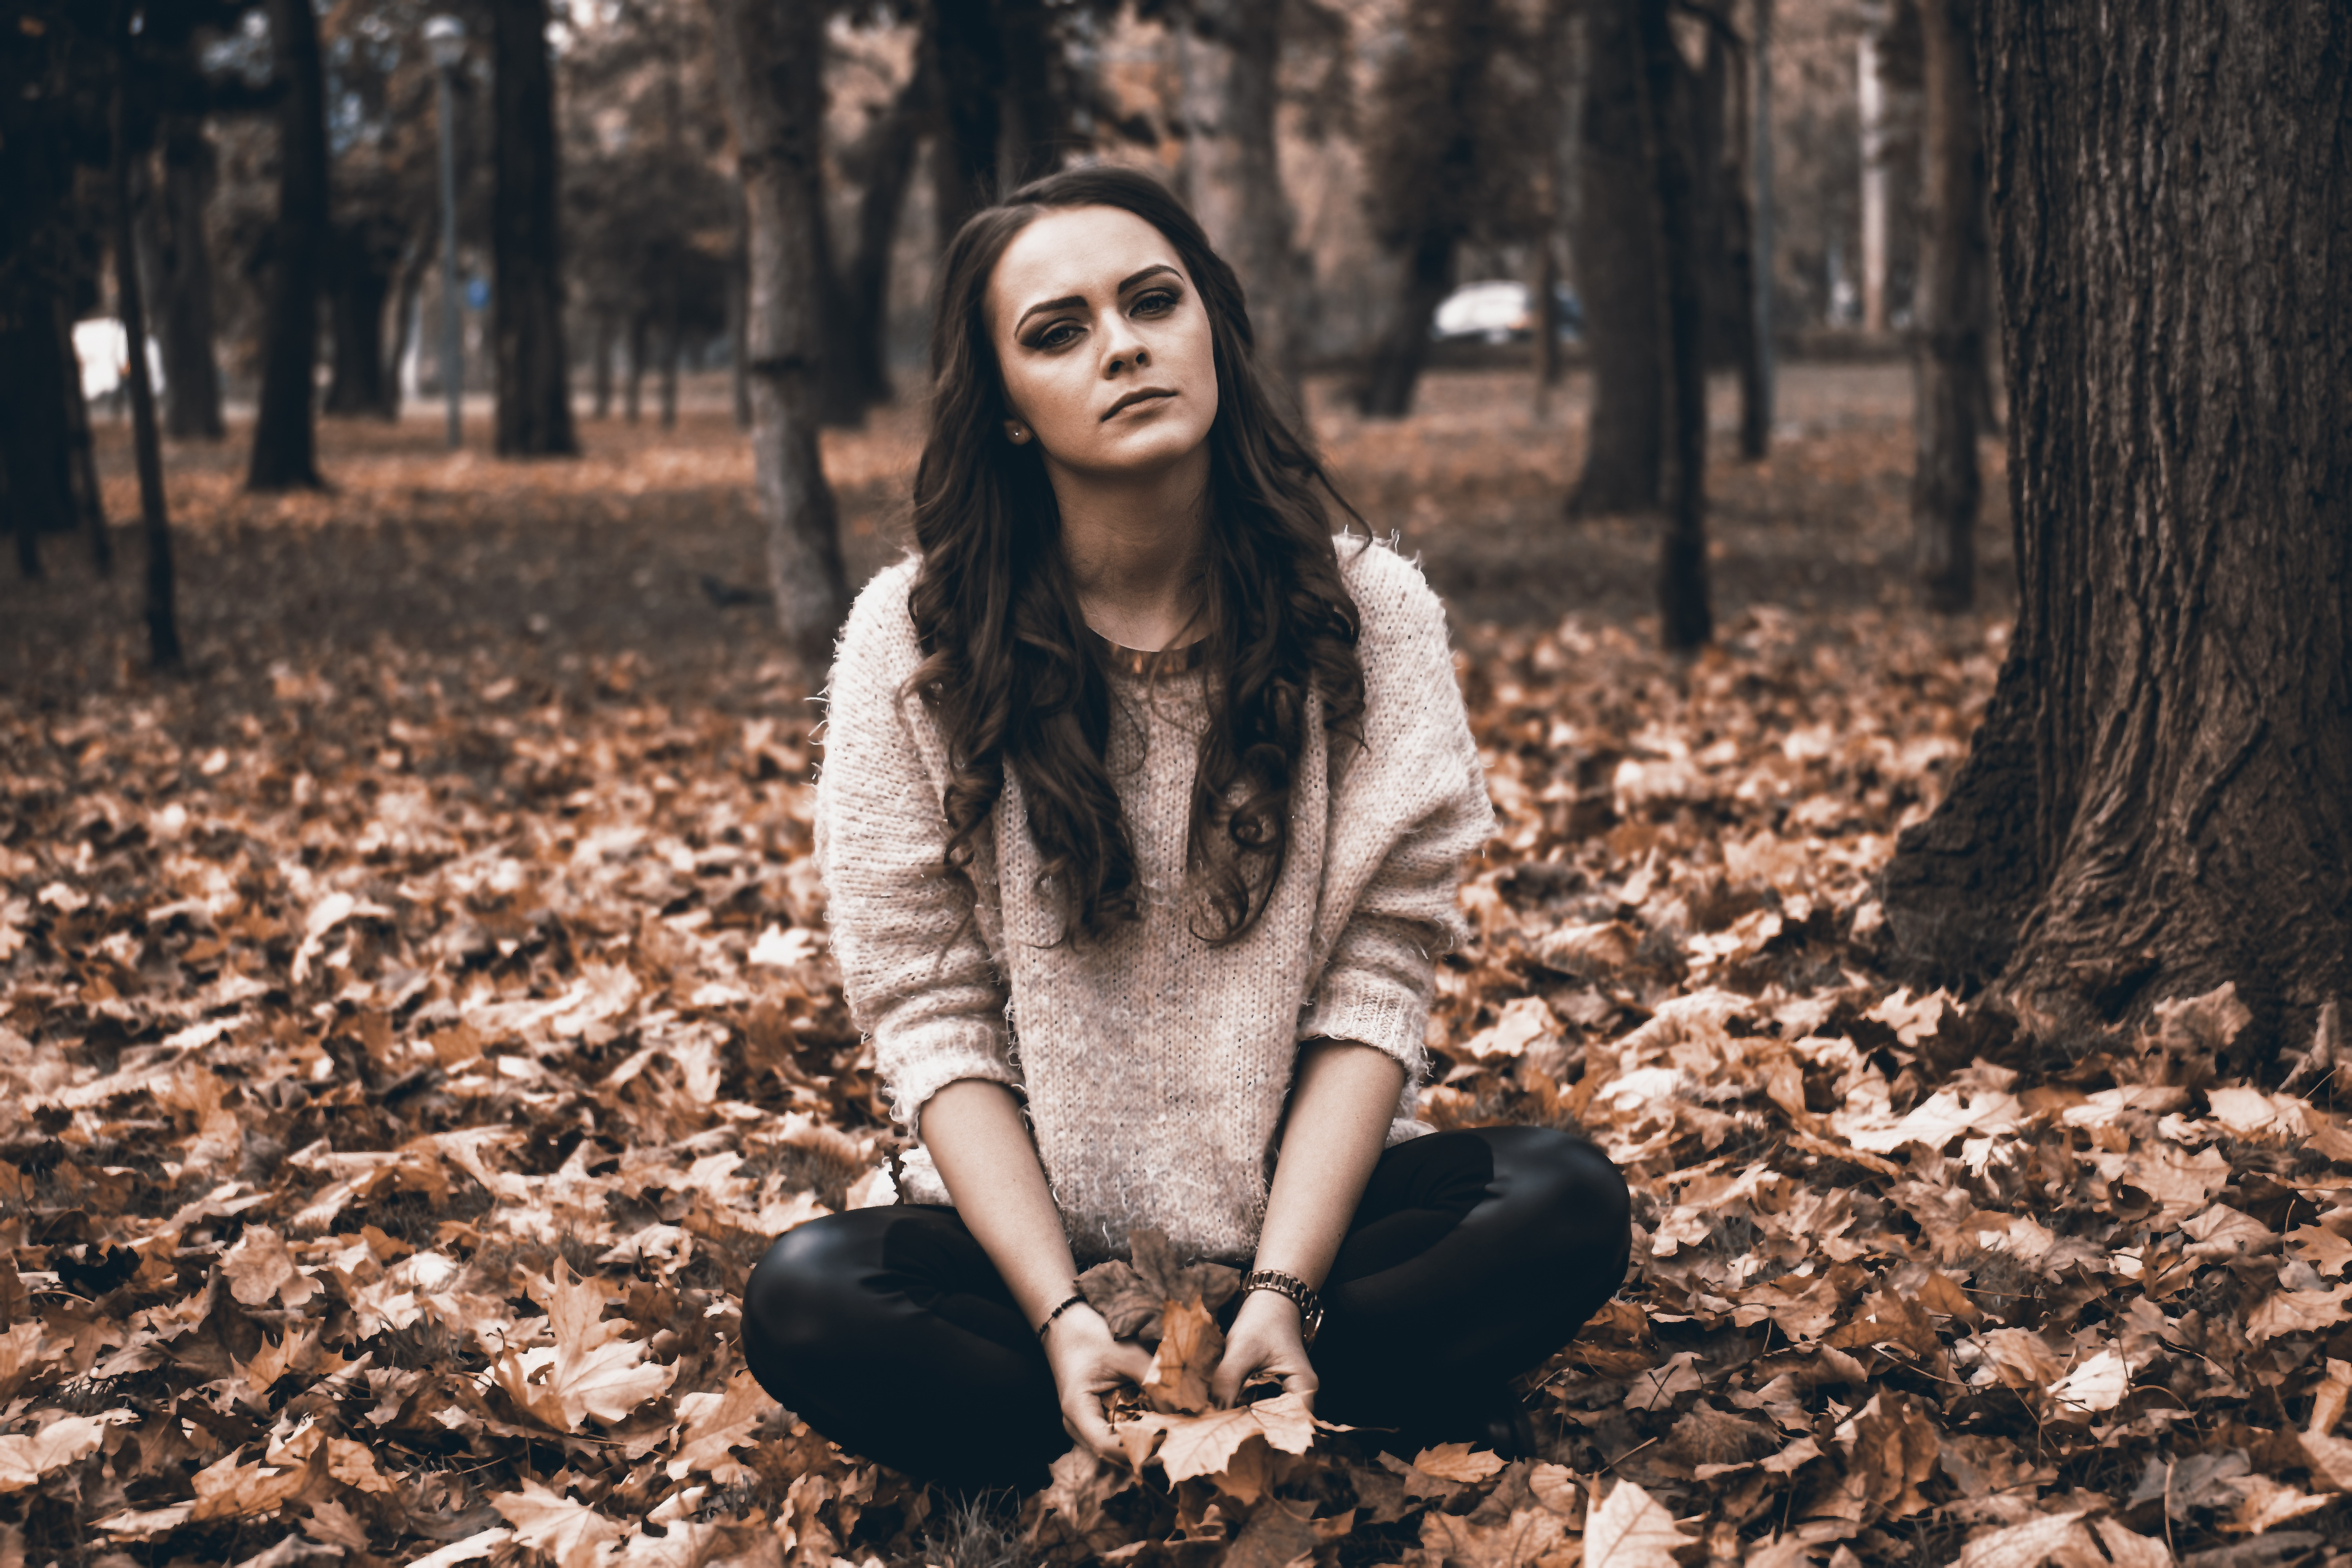 depressed girl in forest